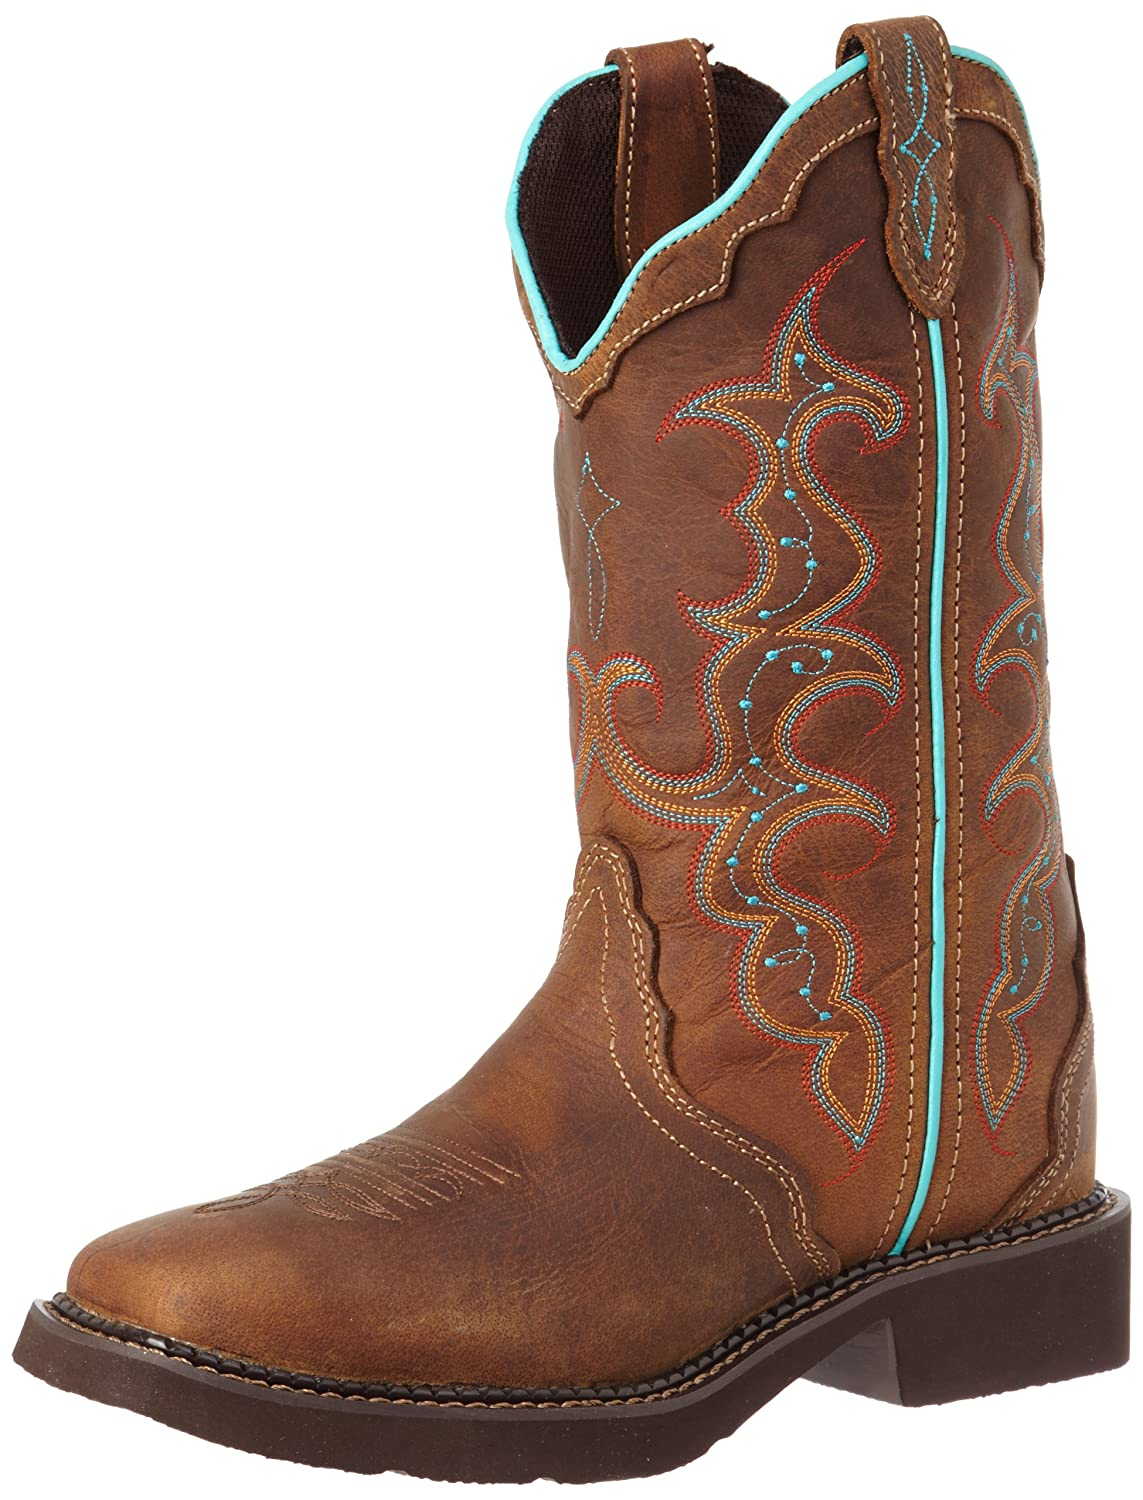 8928afd9c70 Justin Boots Women's Gypsy Collection 12